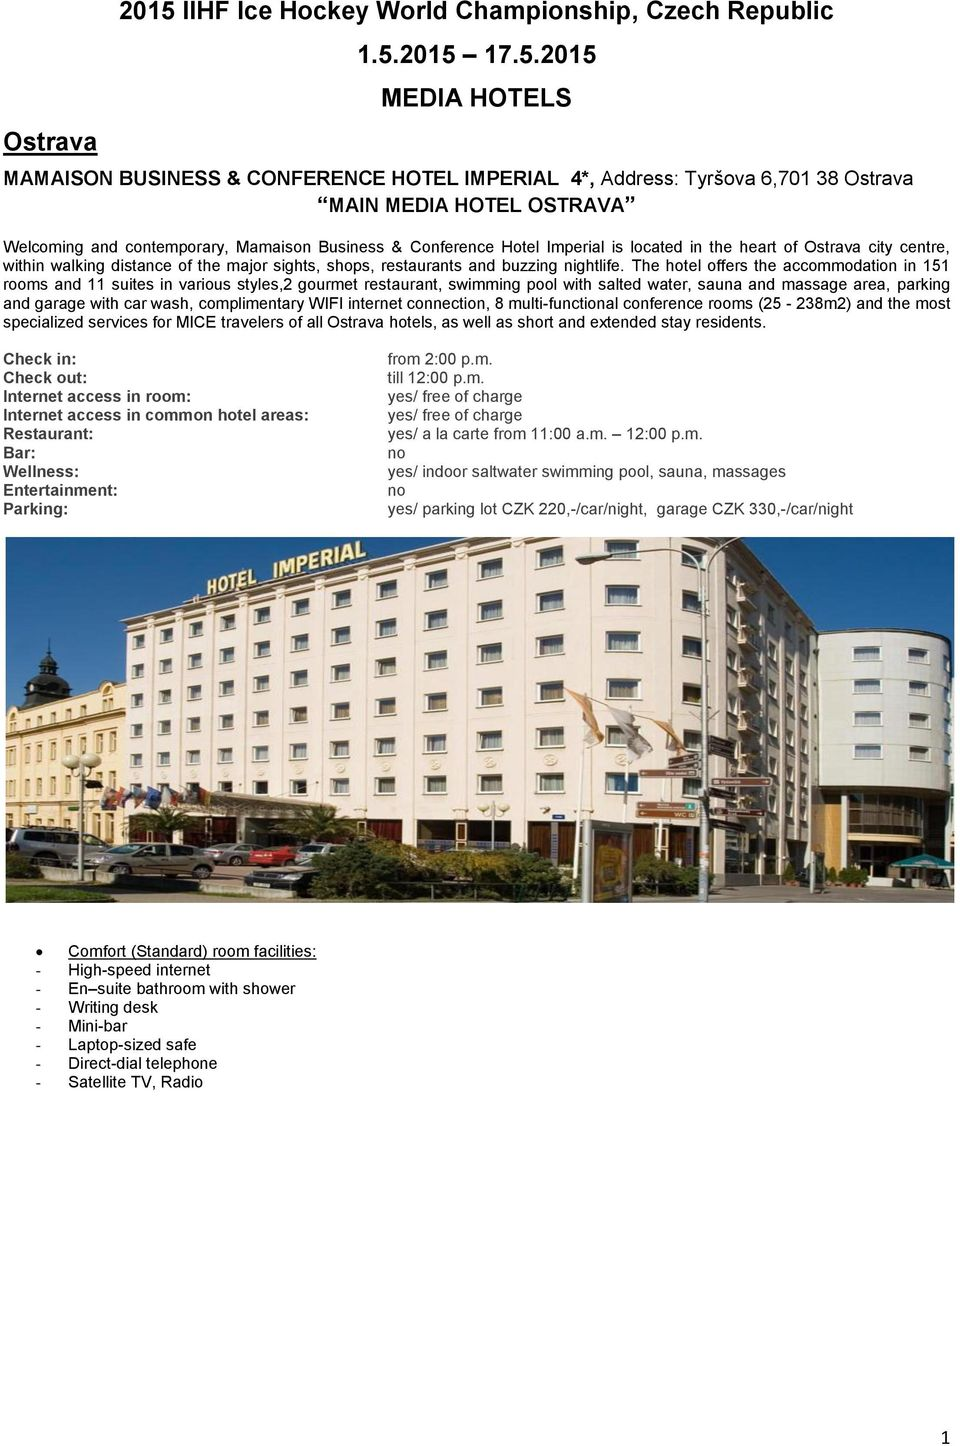 2015 17.5.2015 MEDIA HOTELS MAMAISON BUSINESS & CONFERENCE HOTEL IMPERIAL 4*, Address: Tyršova 6,701 38 Ostrava MAIN MEDIA HOTEL OSTRAVA Welcoming and contemporary, Mamaison Business & Conference